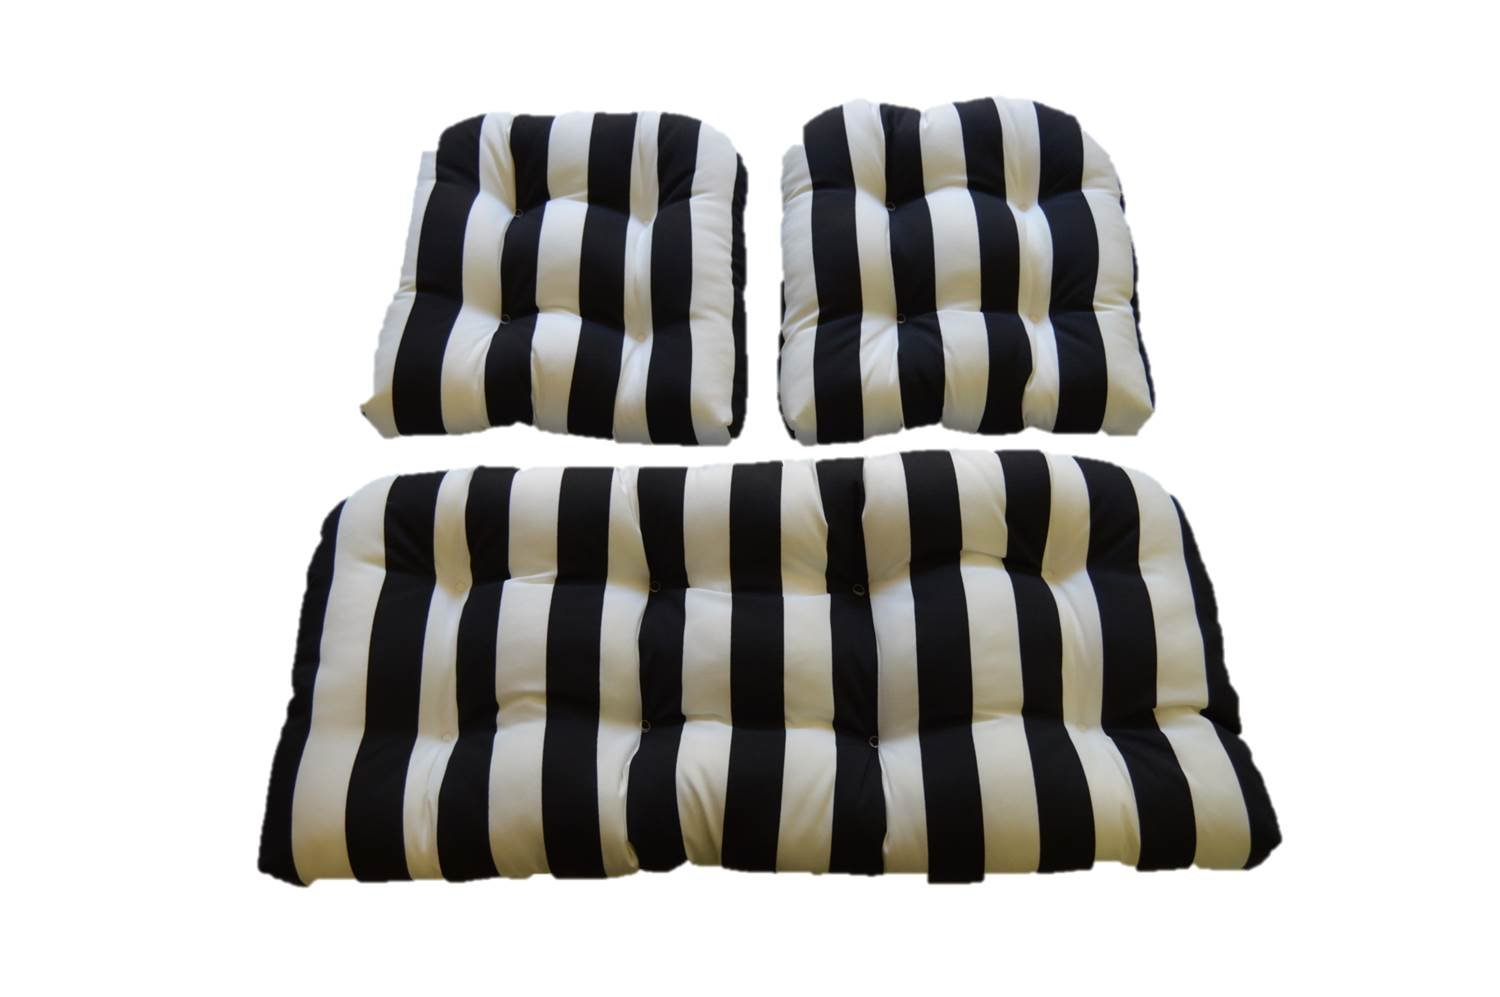 Black & White Stripe Fabric Cushions for Wicker Loveseat Settee & 2 Matching Chair Cushions